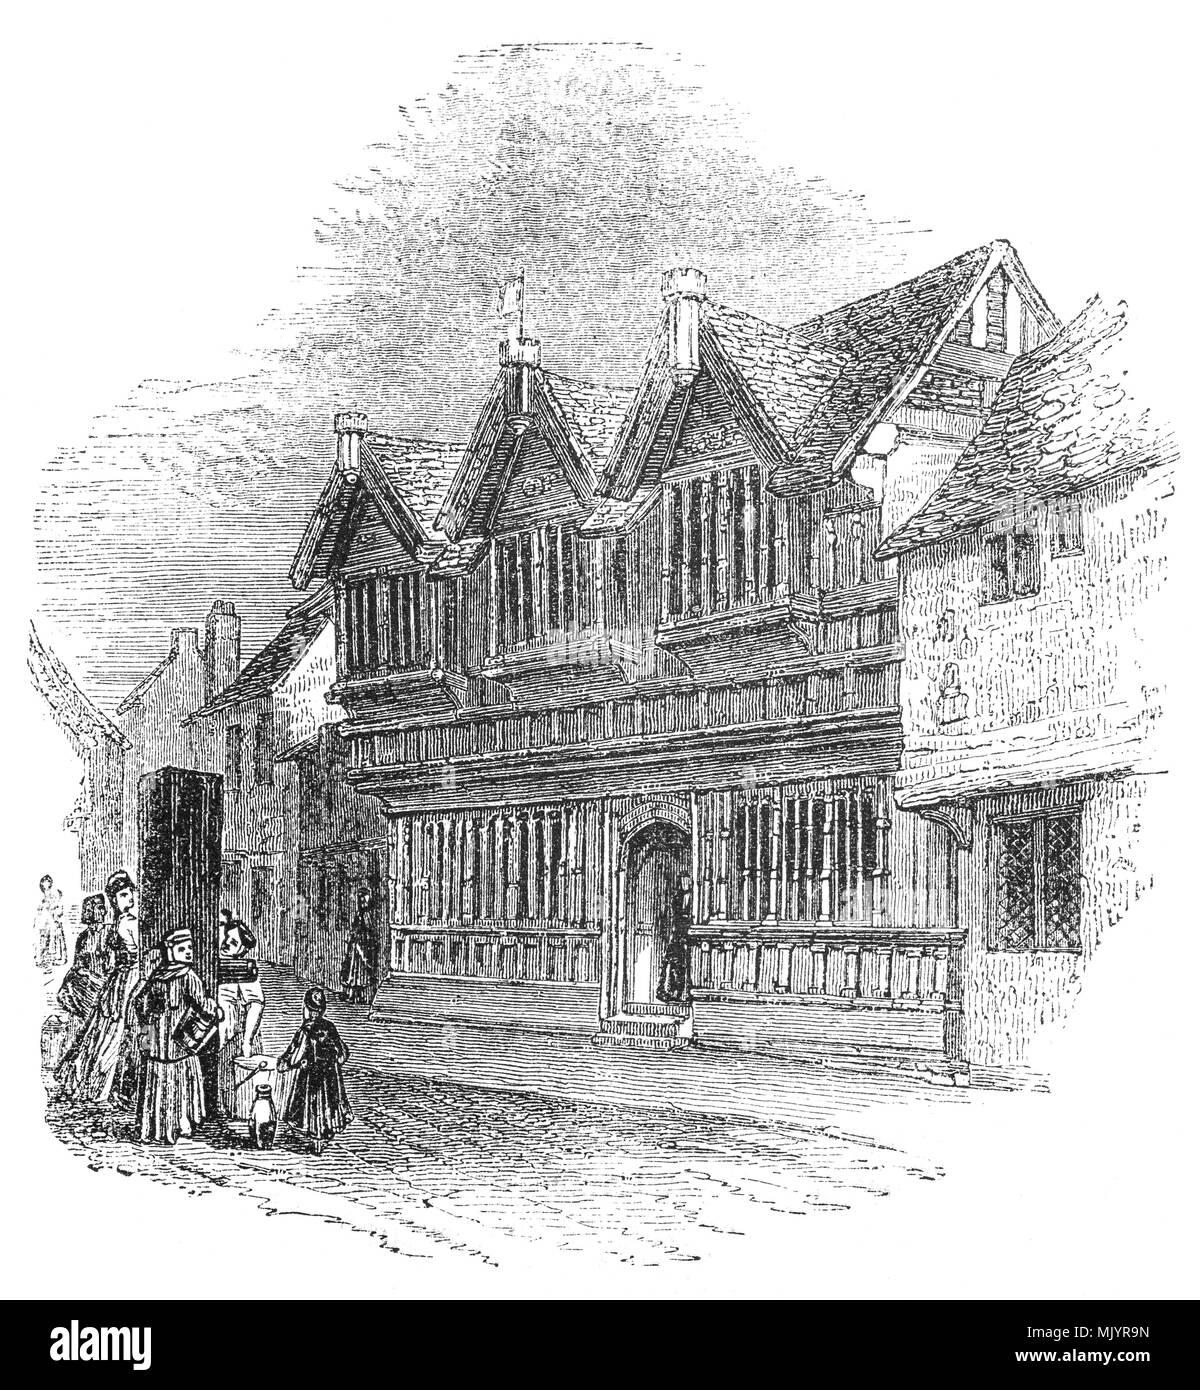 Ford's Hospital Almshouse, a picturesque English timber-framed building known as Ford's Hospital was founded in 1509 by a former Mayor Coventry named William Ford as an almshouse, providing a residence for elderly people. Inside the building is a narrow courtyard (13 yd × 4 yd considered by historians and writers to be a particularly fine example of English domestic architecture of the period. During the Coventry Blitz, the building was hit by German bombing,but was restored with the original timbers between 1951 and 1953. - Stock Image